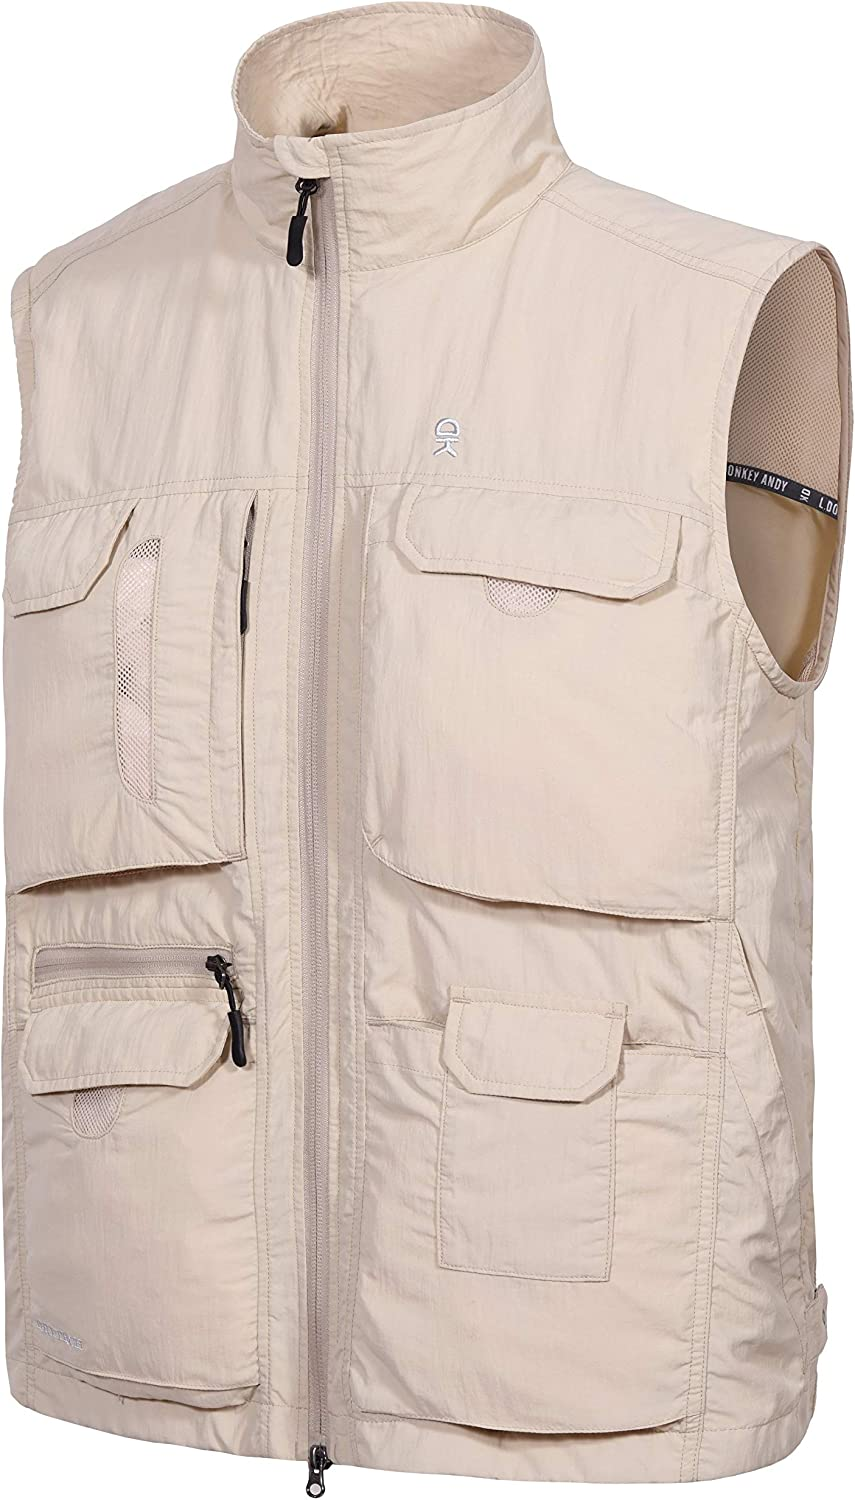 Little Donkey Andy Menss Lightweight Quick Dry Fishing Safari Vest for Outdoor Sports with Multi-Pockets